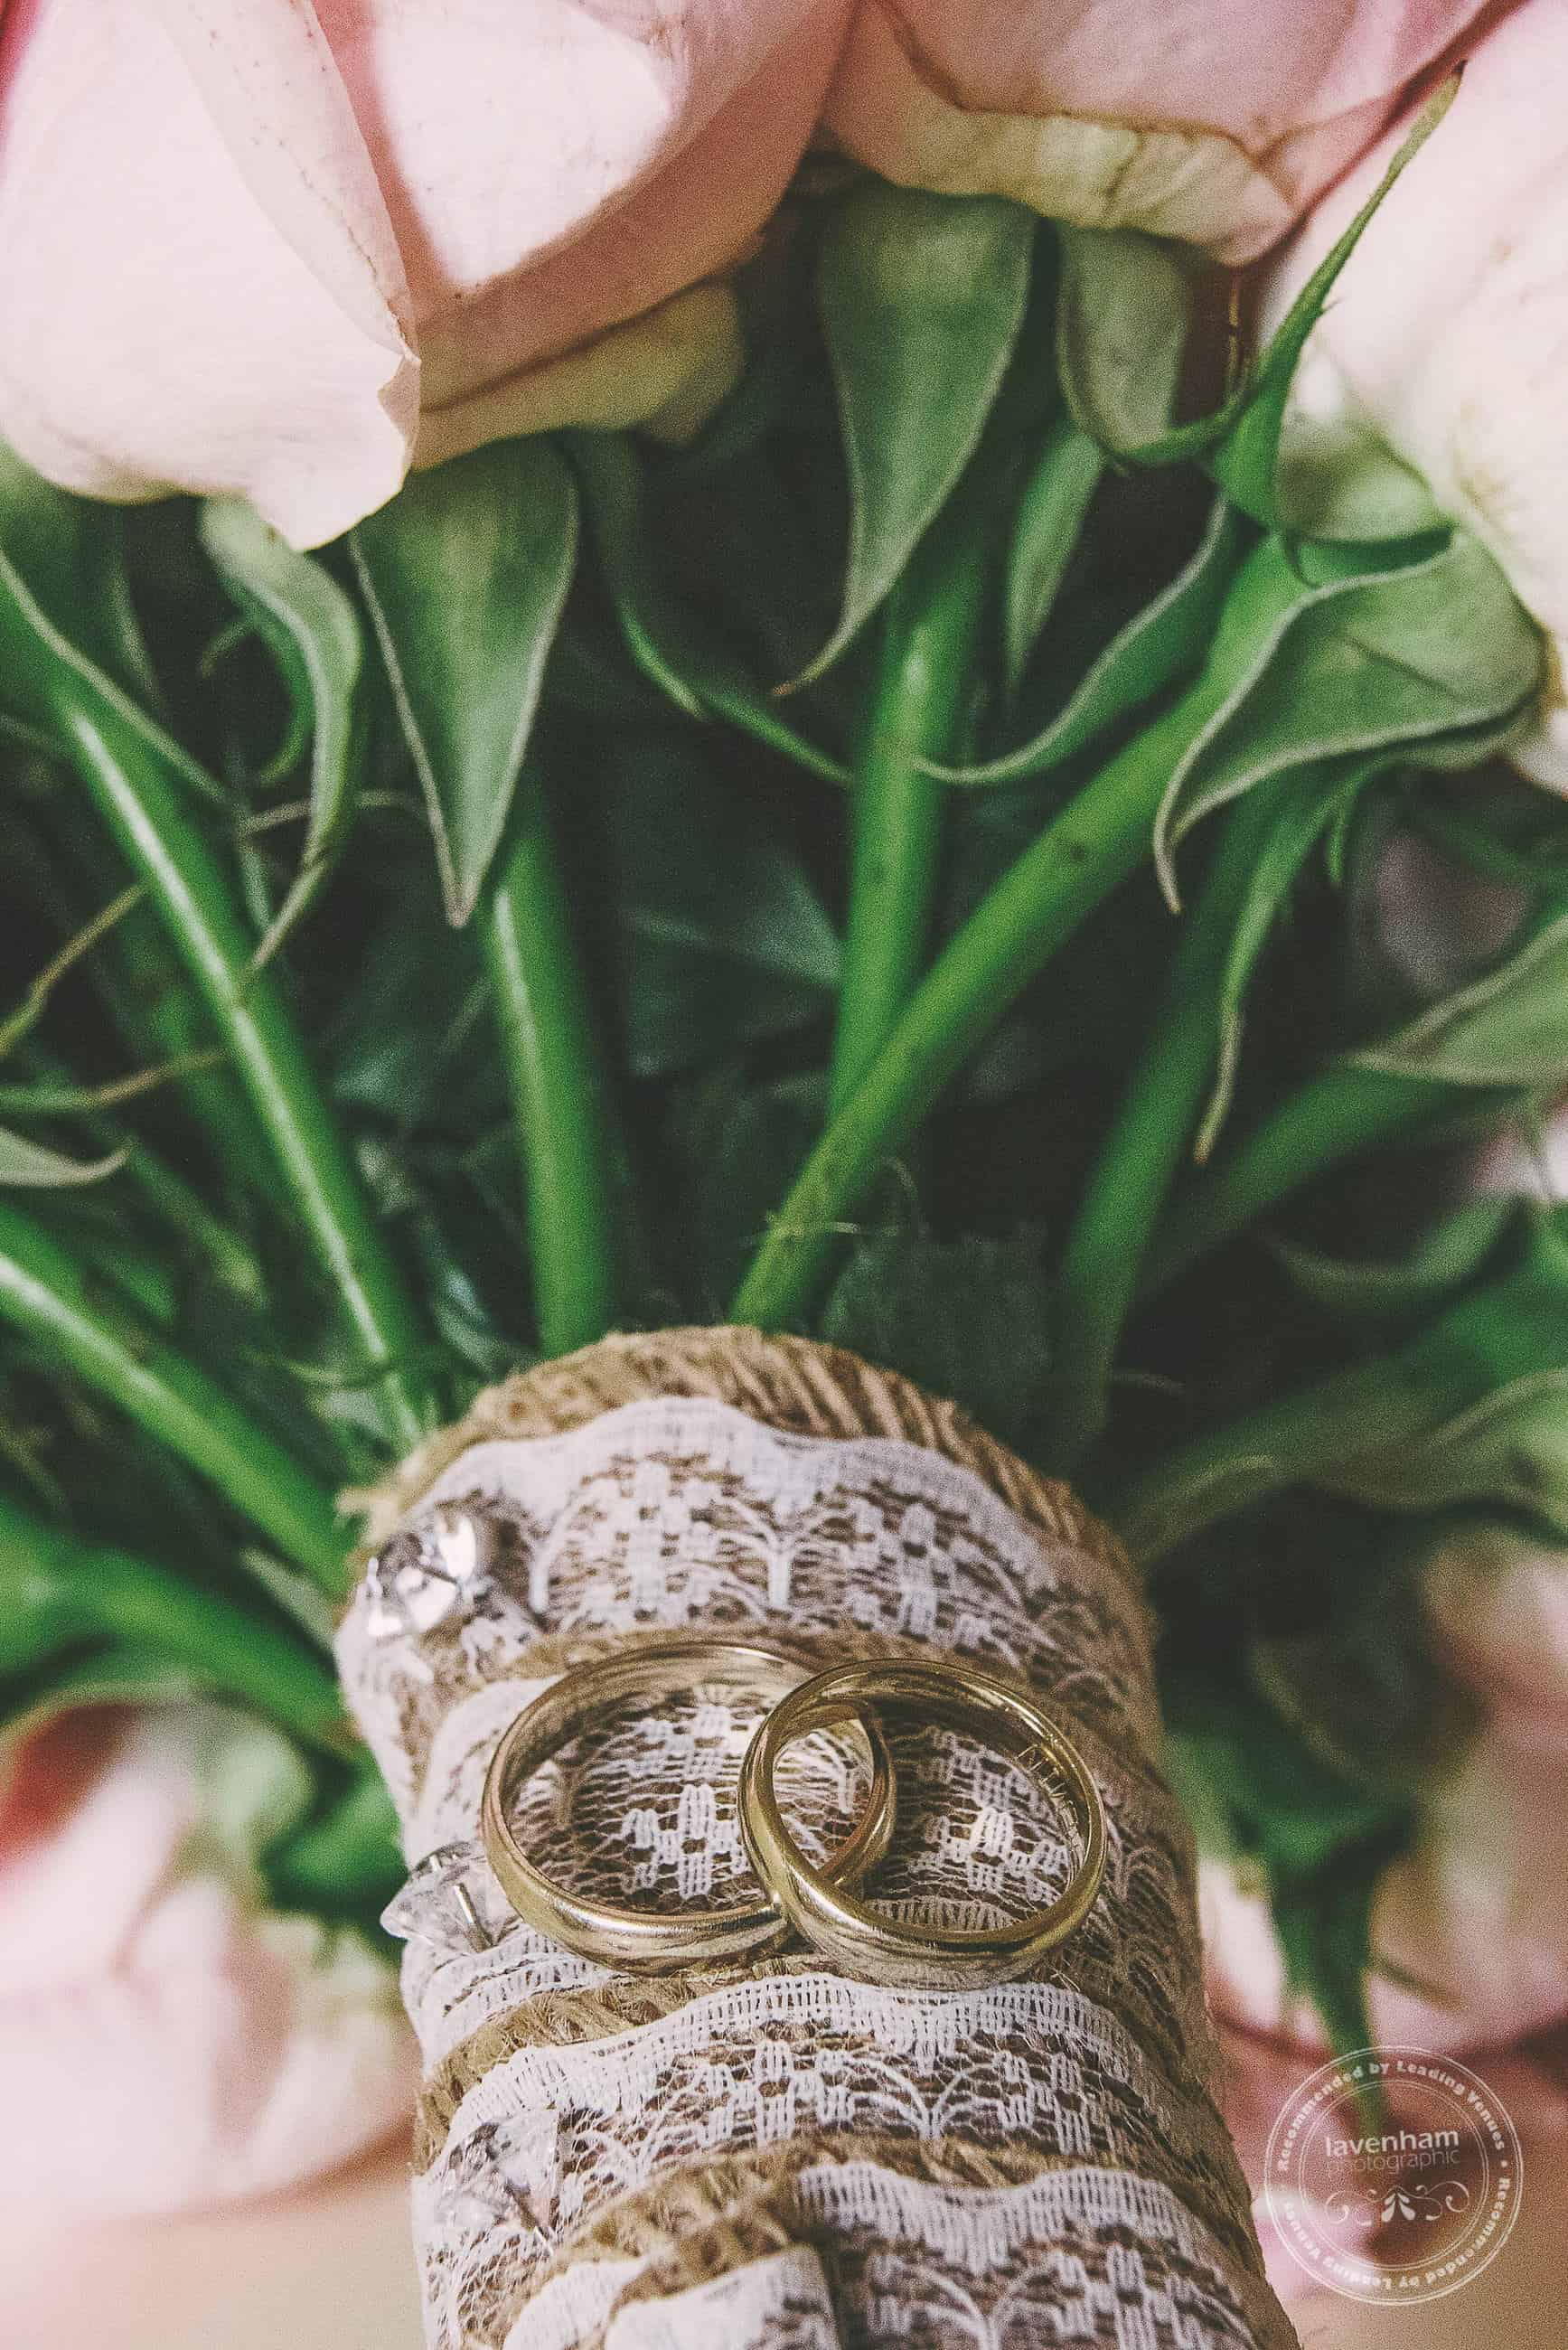 Wedding ring detail photo, sitting on hessian and lace detailing of bouquet